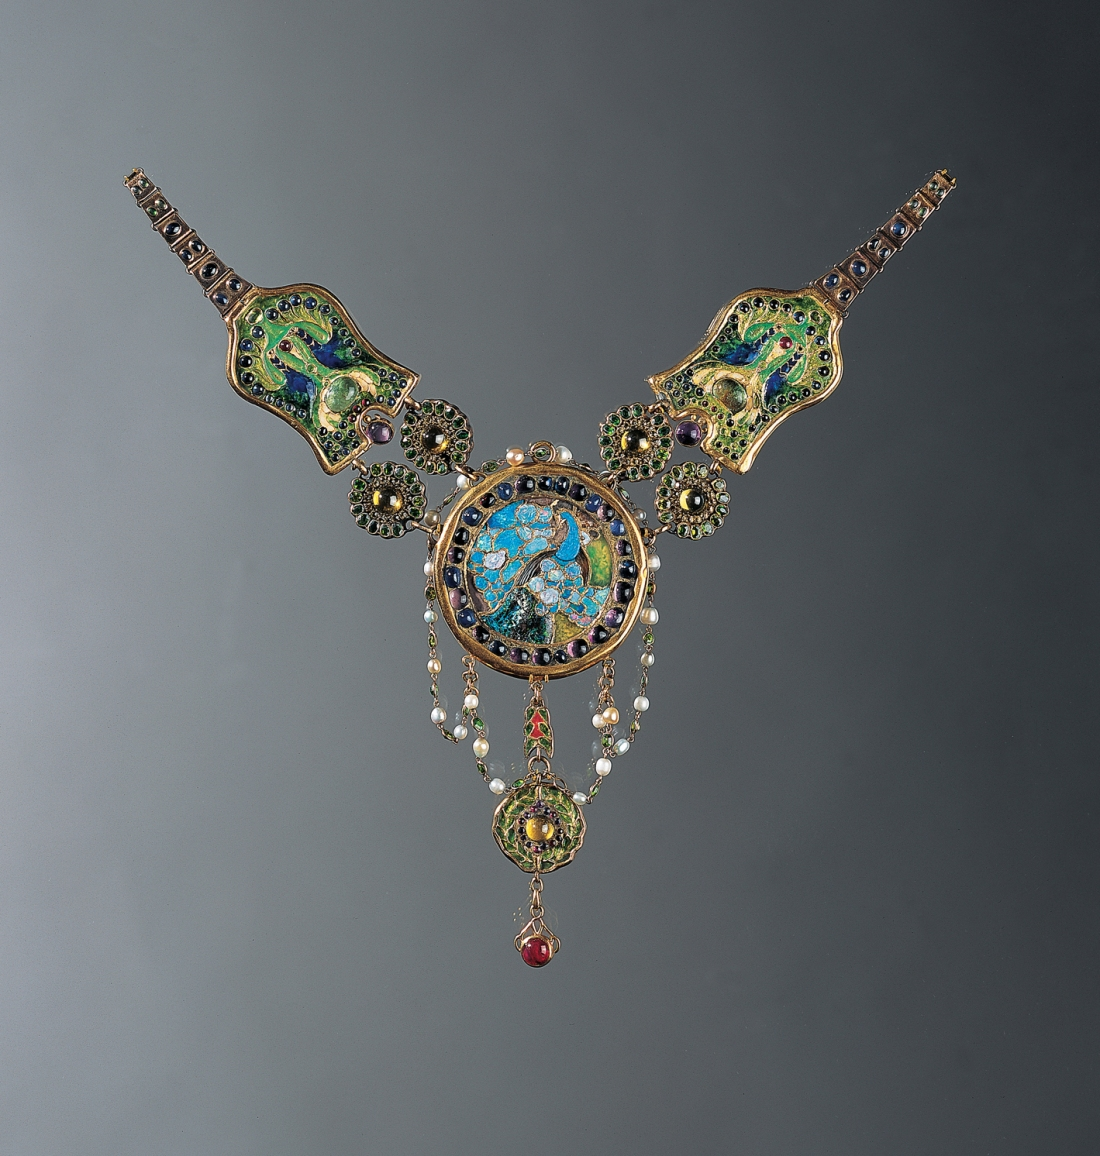 Peacock and flamingo necklace. ca. 1903-1906.